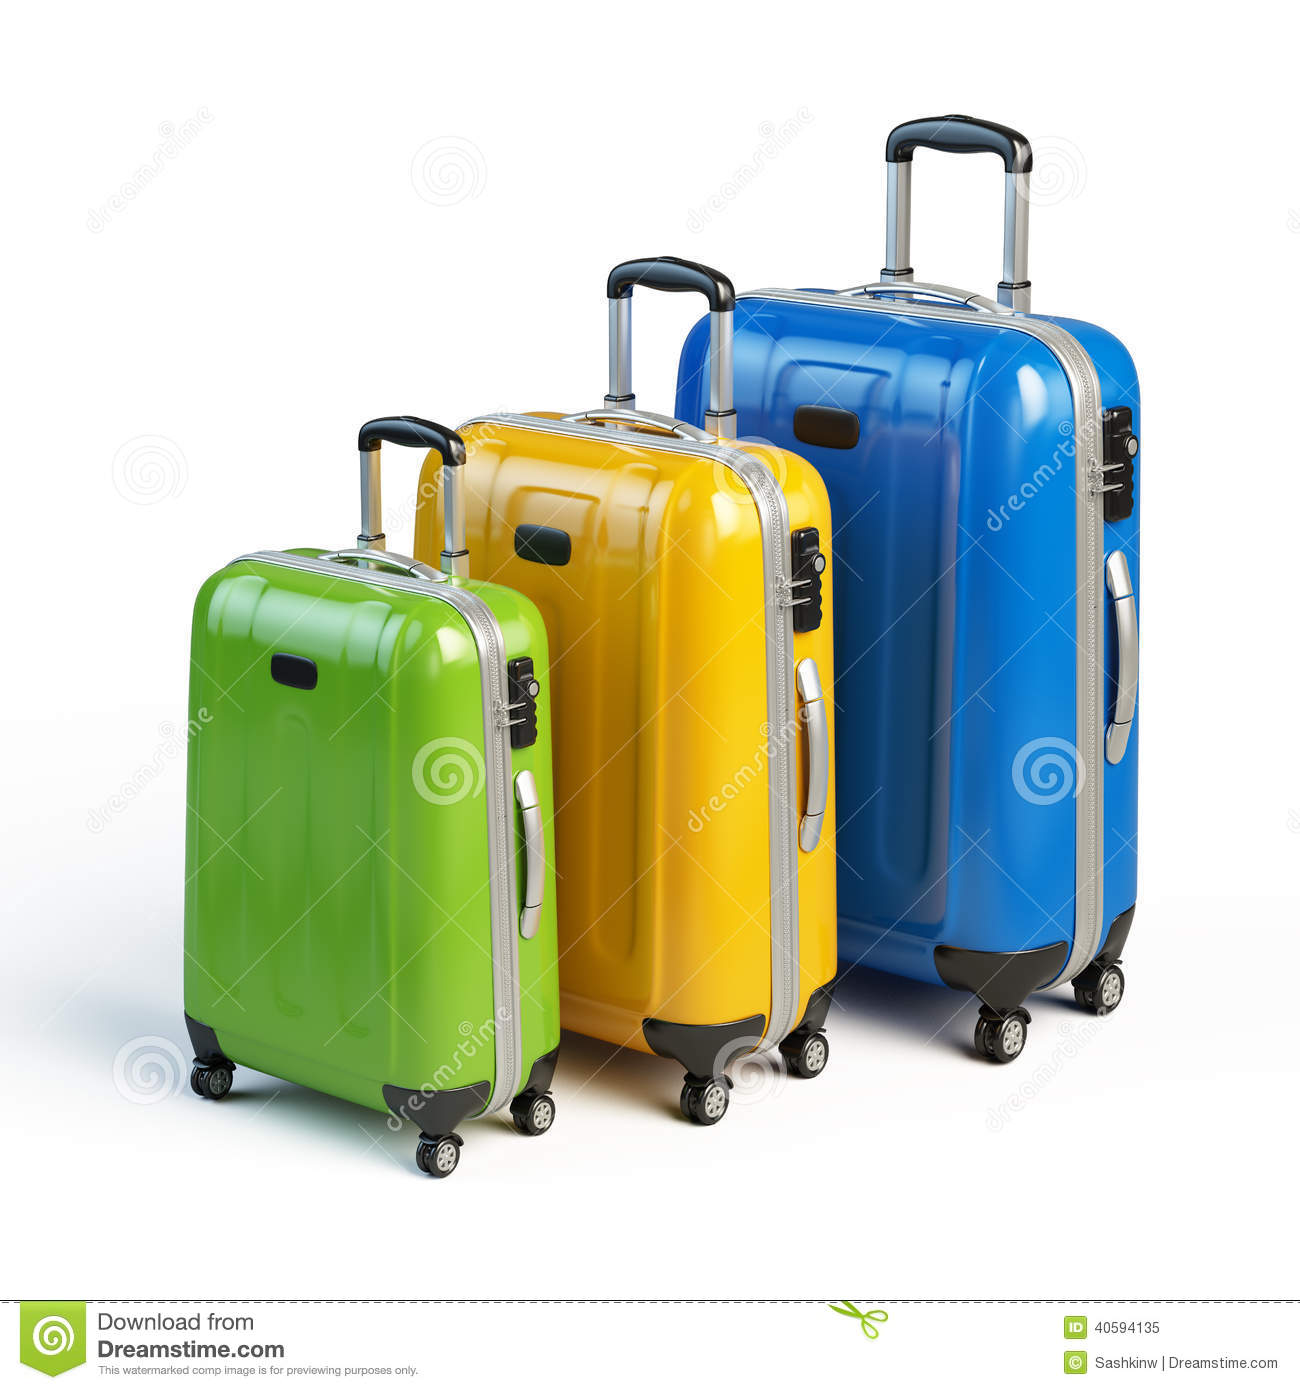 Travel, Luggage Icon Stock Illustration - Image: 40594135